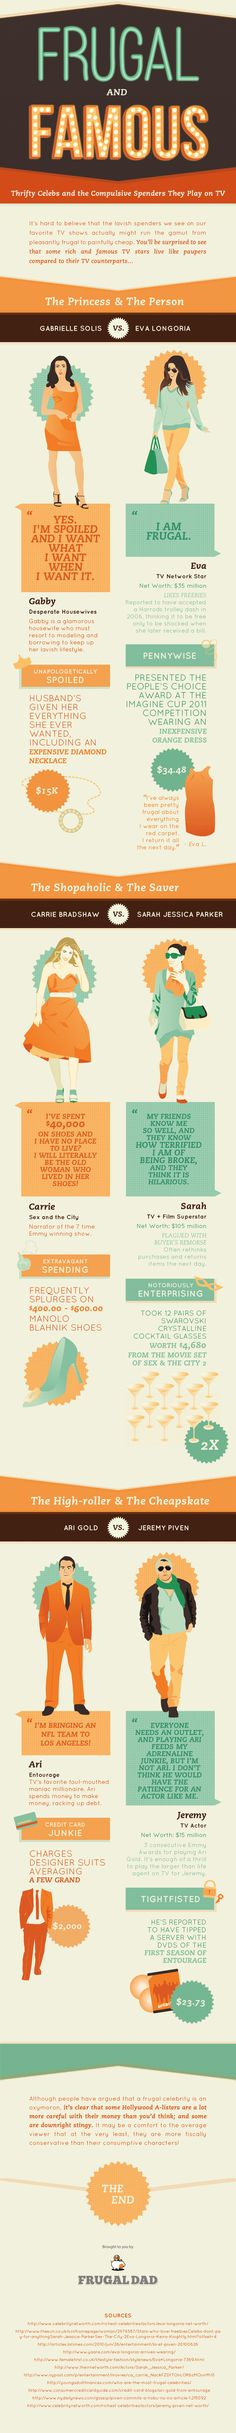 Frugal and Famous: Thrifty celebs and the compulsive spenders they play on TV.  [infographic]